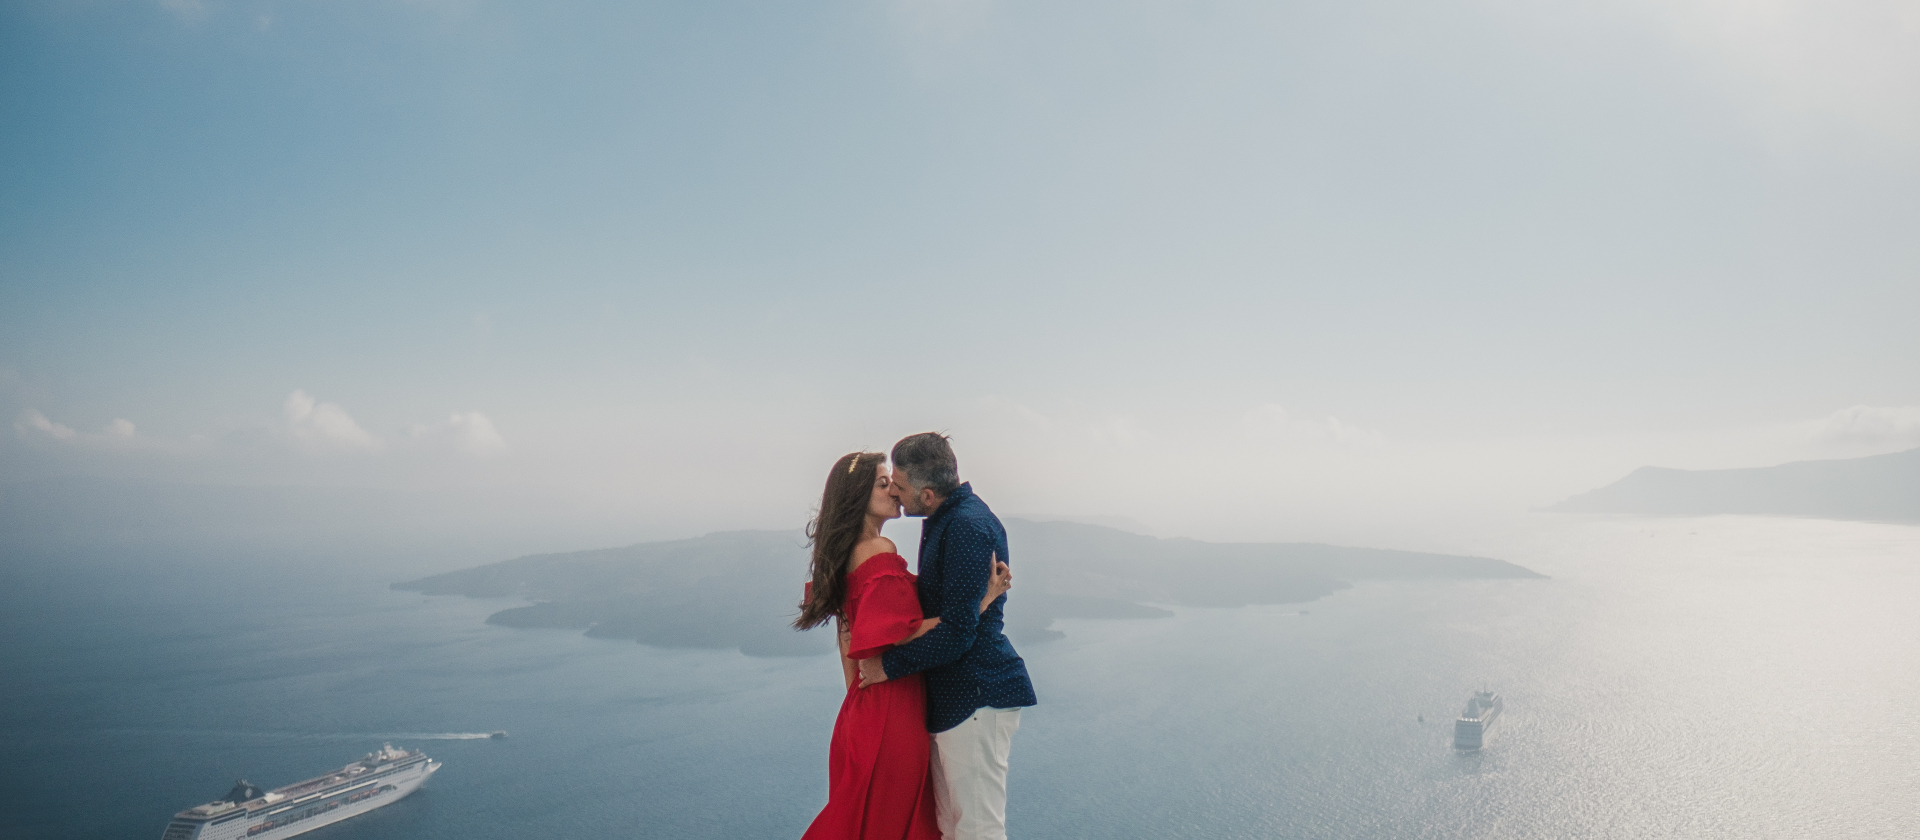 HEARTBEAT of love // Elopement in Santorini Island, Greece